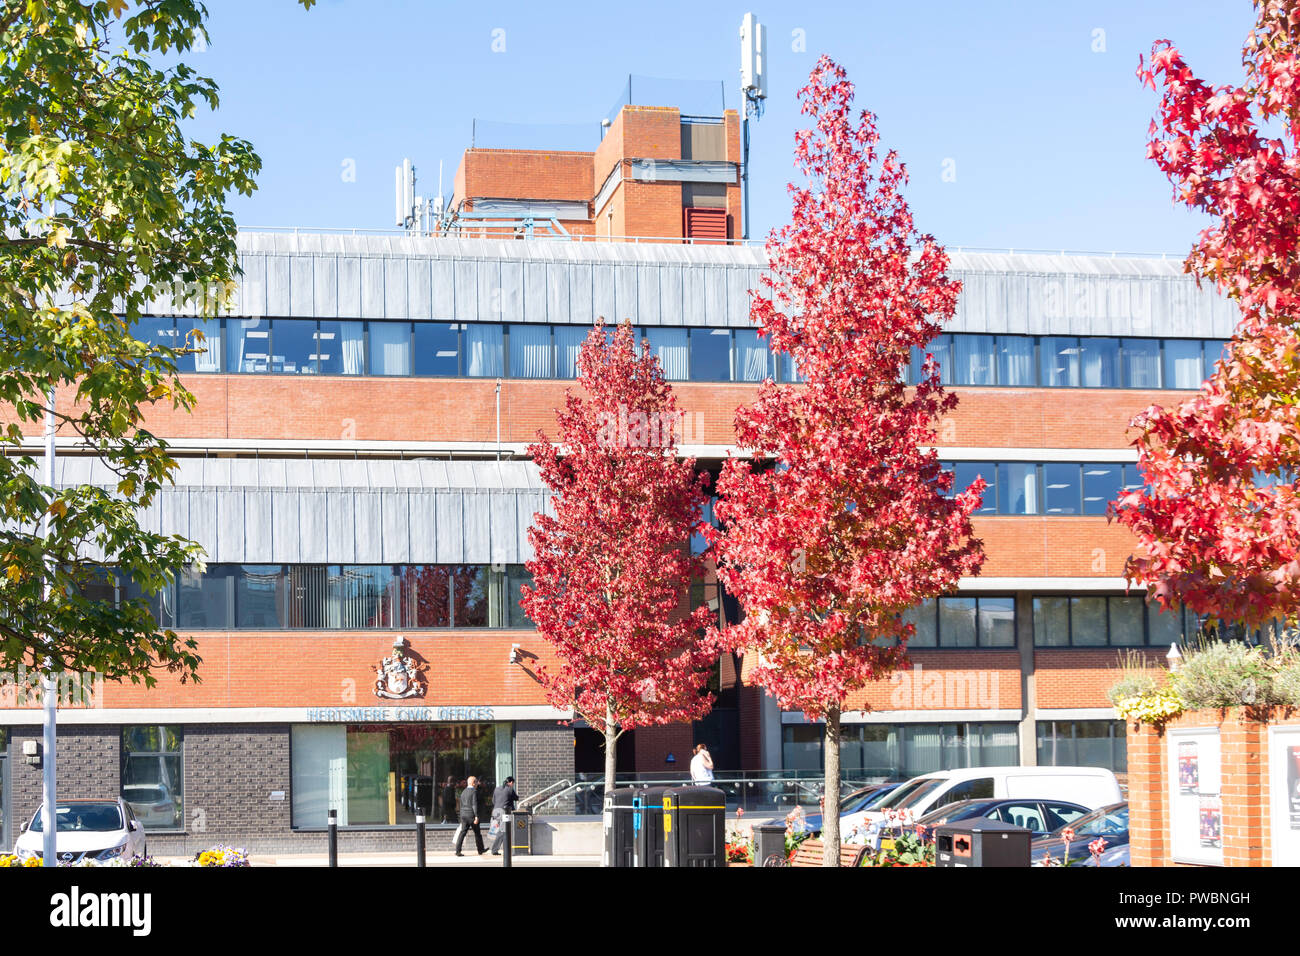 Hertsmere Civic Offices (Town Hall), Shenley Road, Borehamwood, Hertfordshire, England, United Kingdom - Stock Image